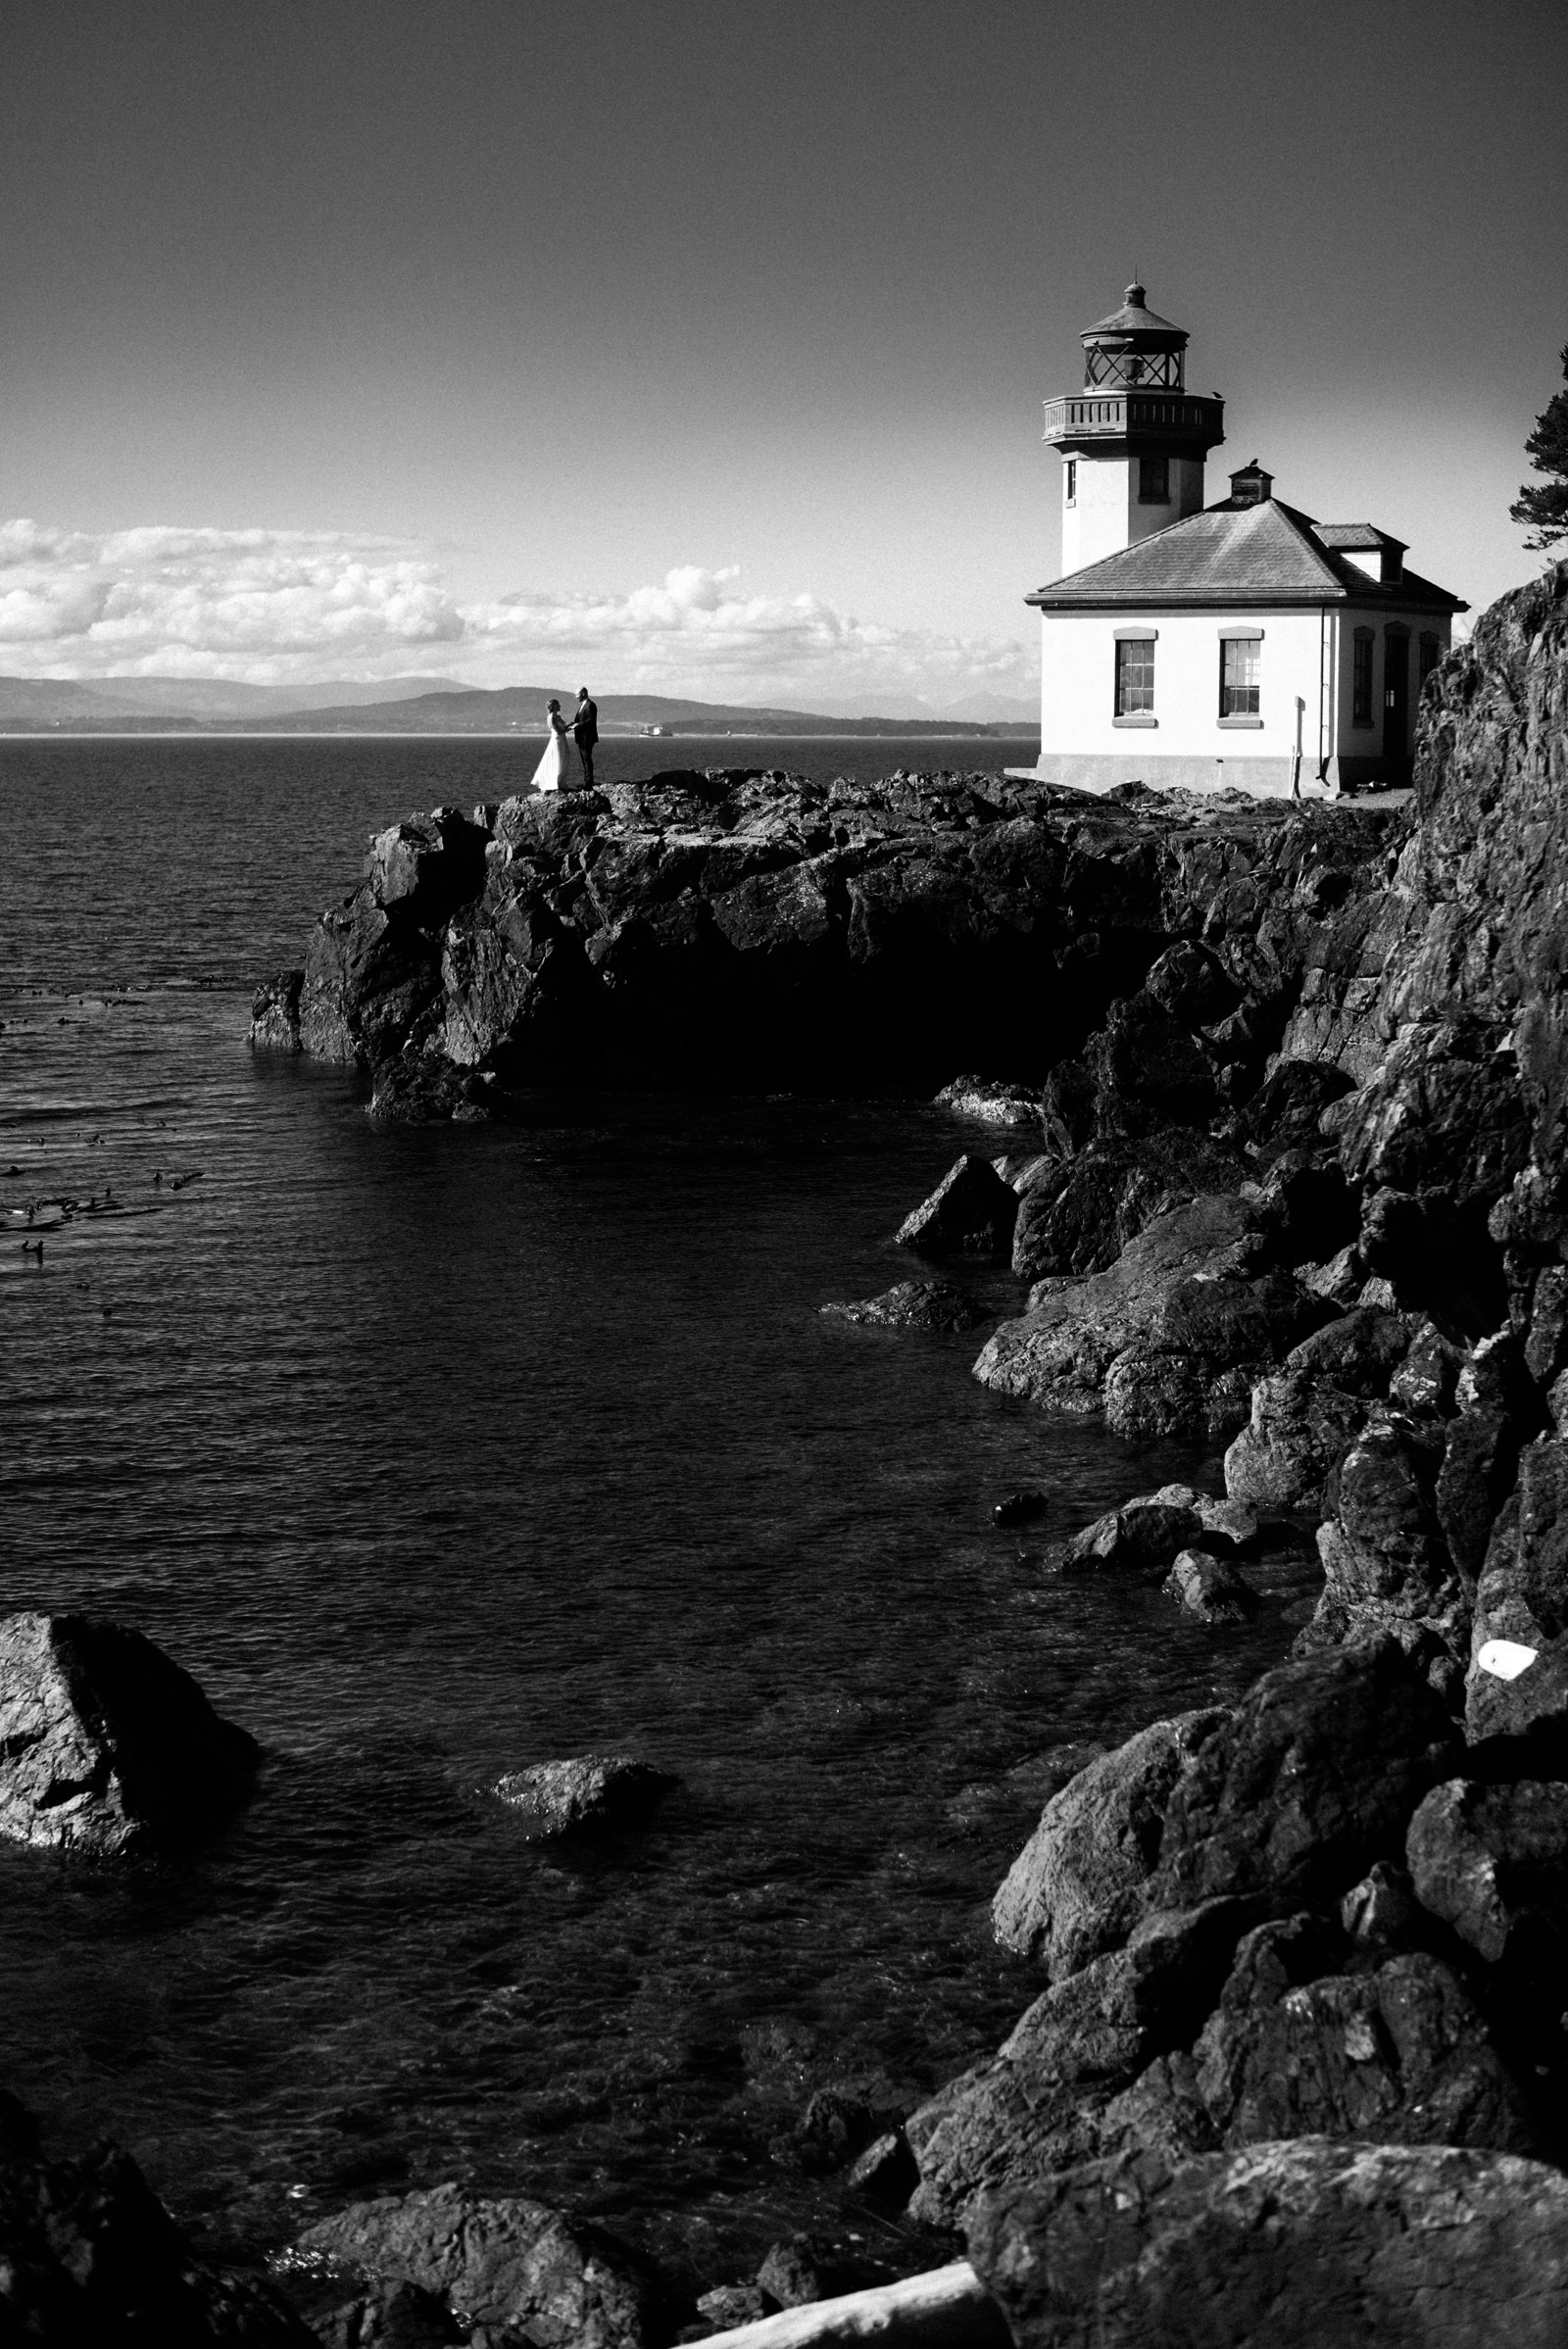 220-roche-harbor-resort-wedding-image-by-best-documentary-photographer-ryan-flynn.jpg